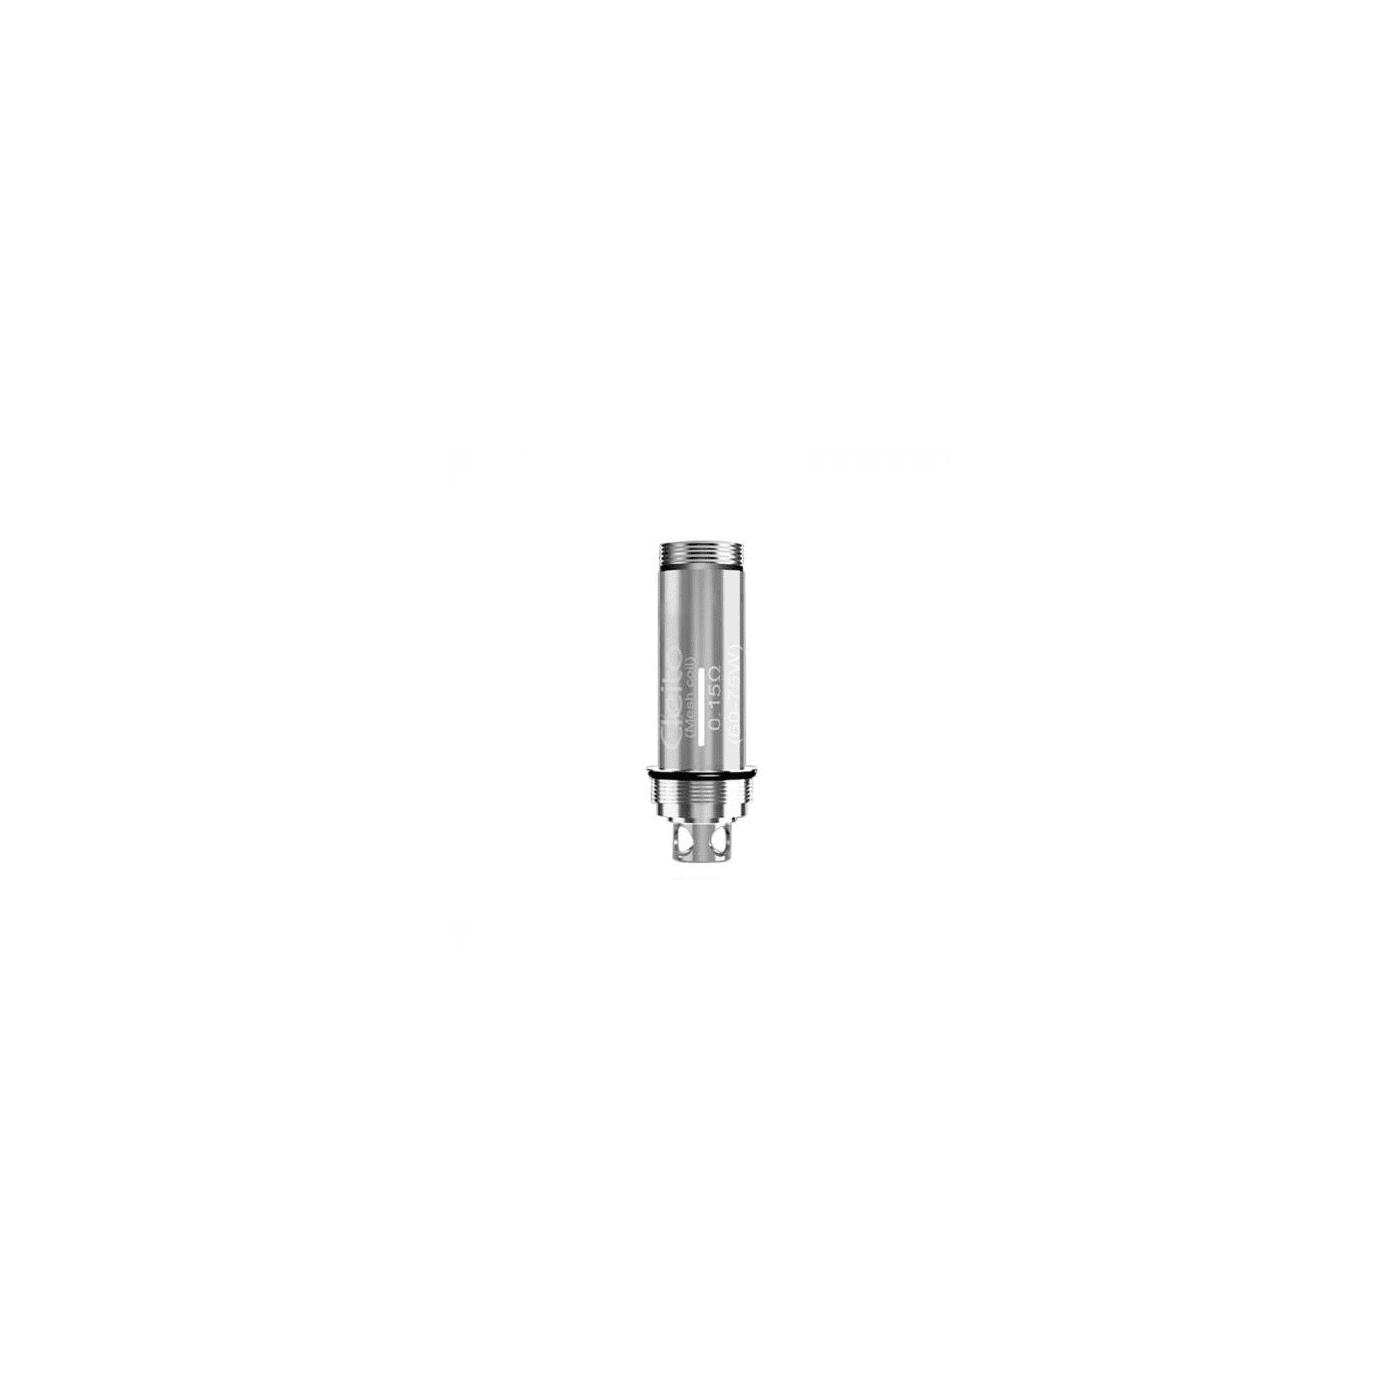 Aspire Cleito Pro Mesh Replacement Coil